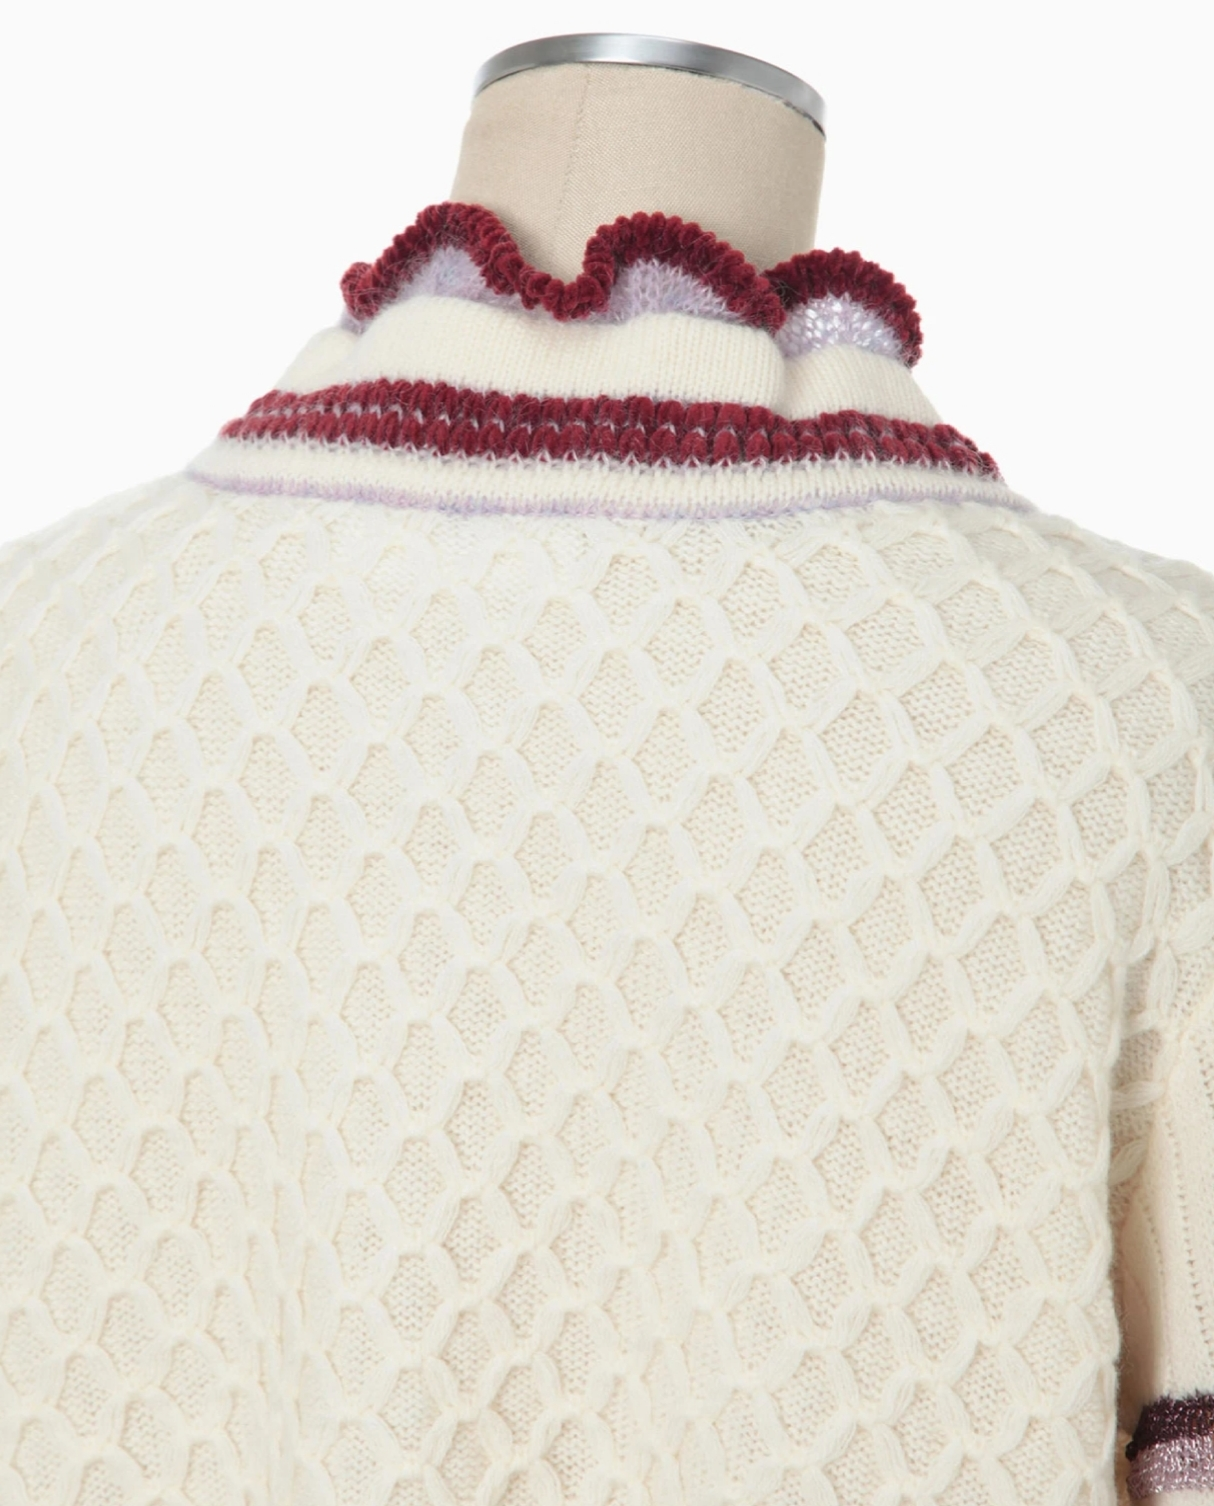 DONNA Les Boutiques - Lace Knitted Cardigan